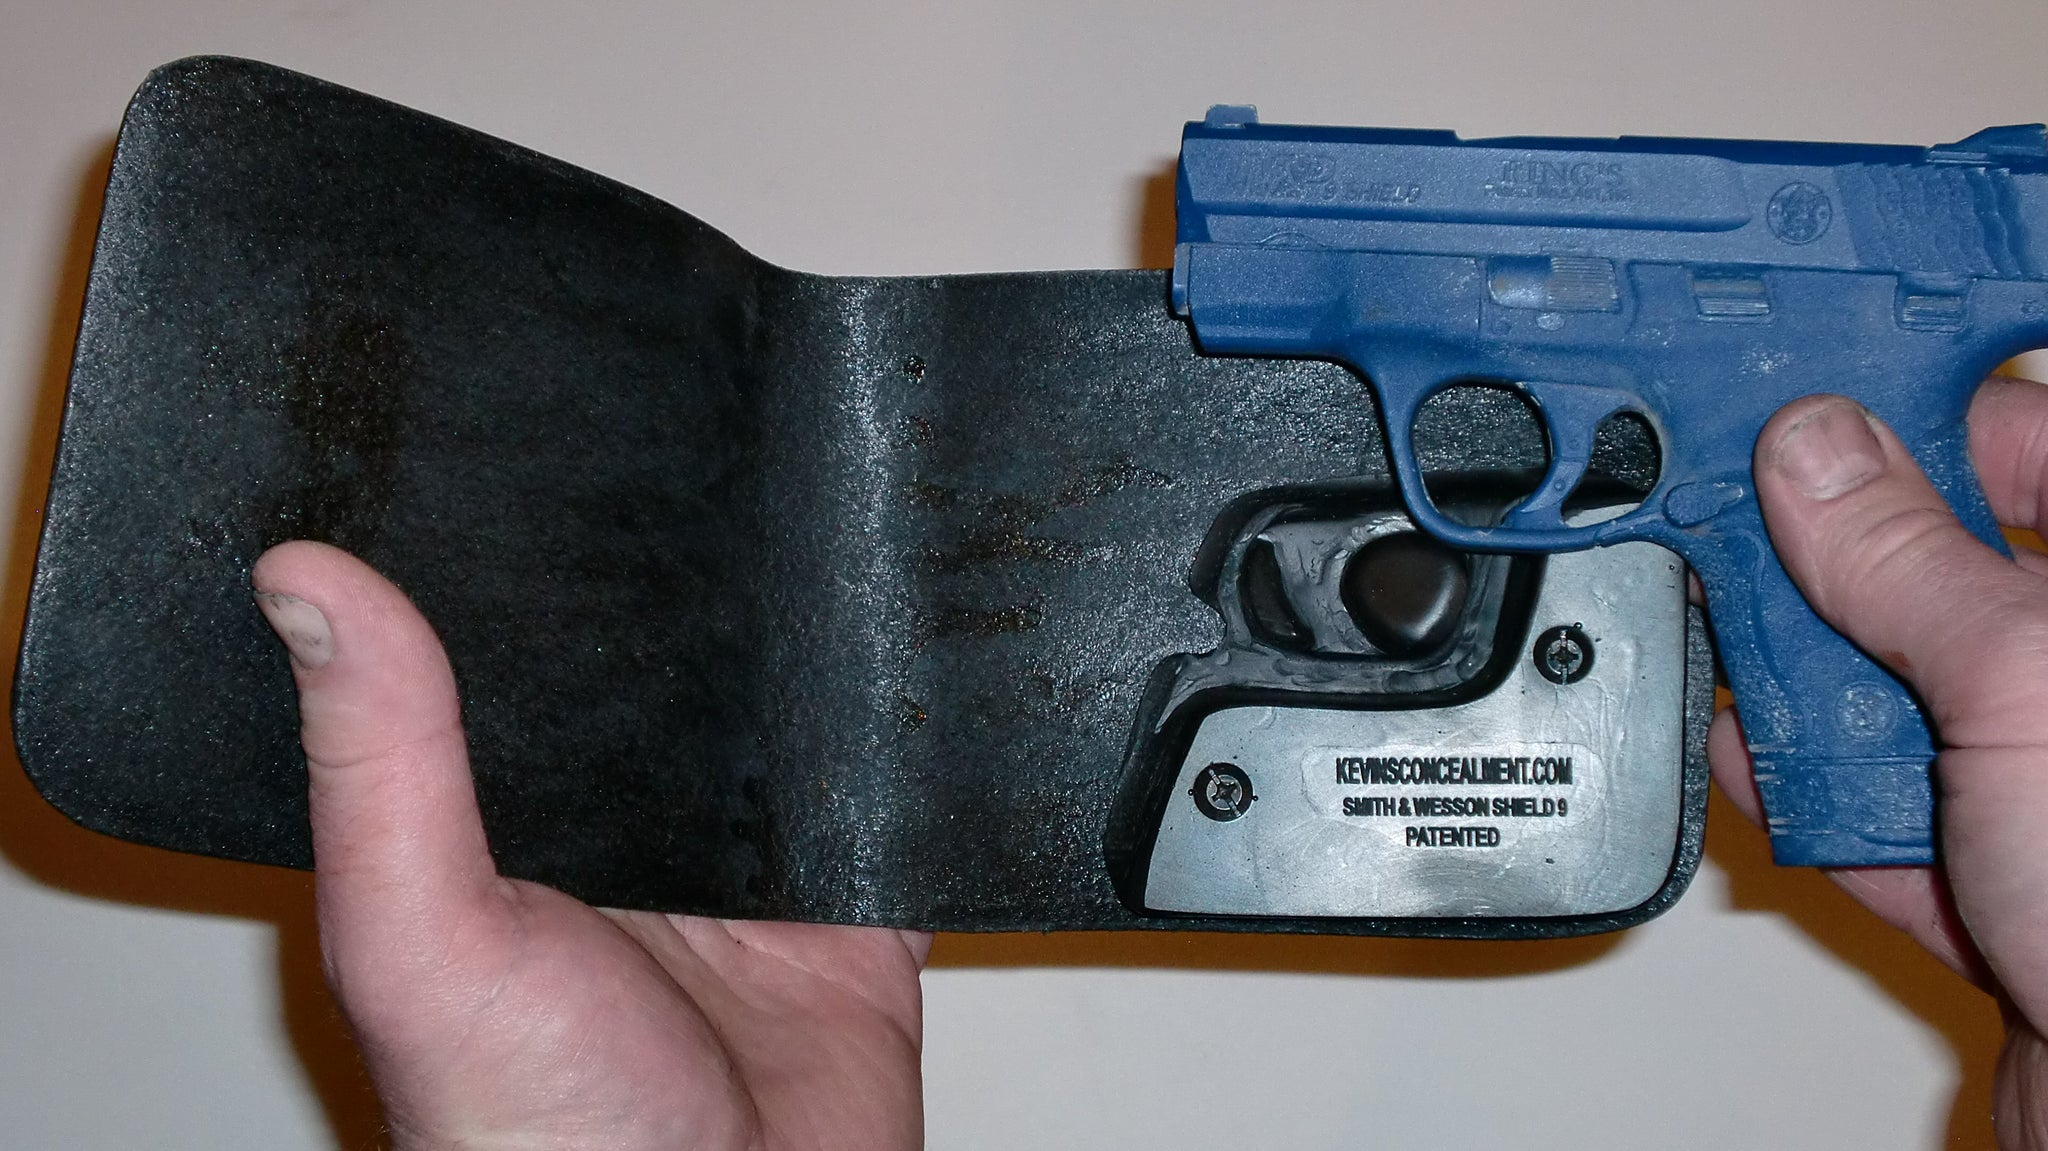 Wallet Holster For Full Concealment - S&W Shield 9mm